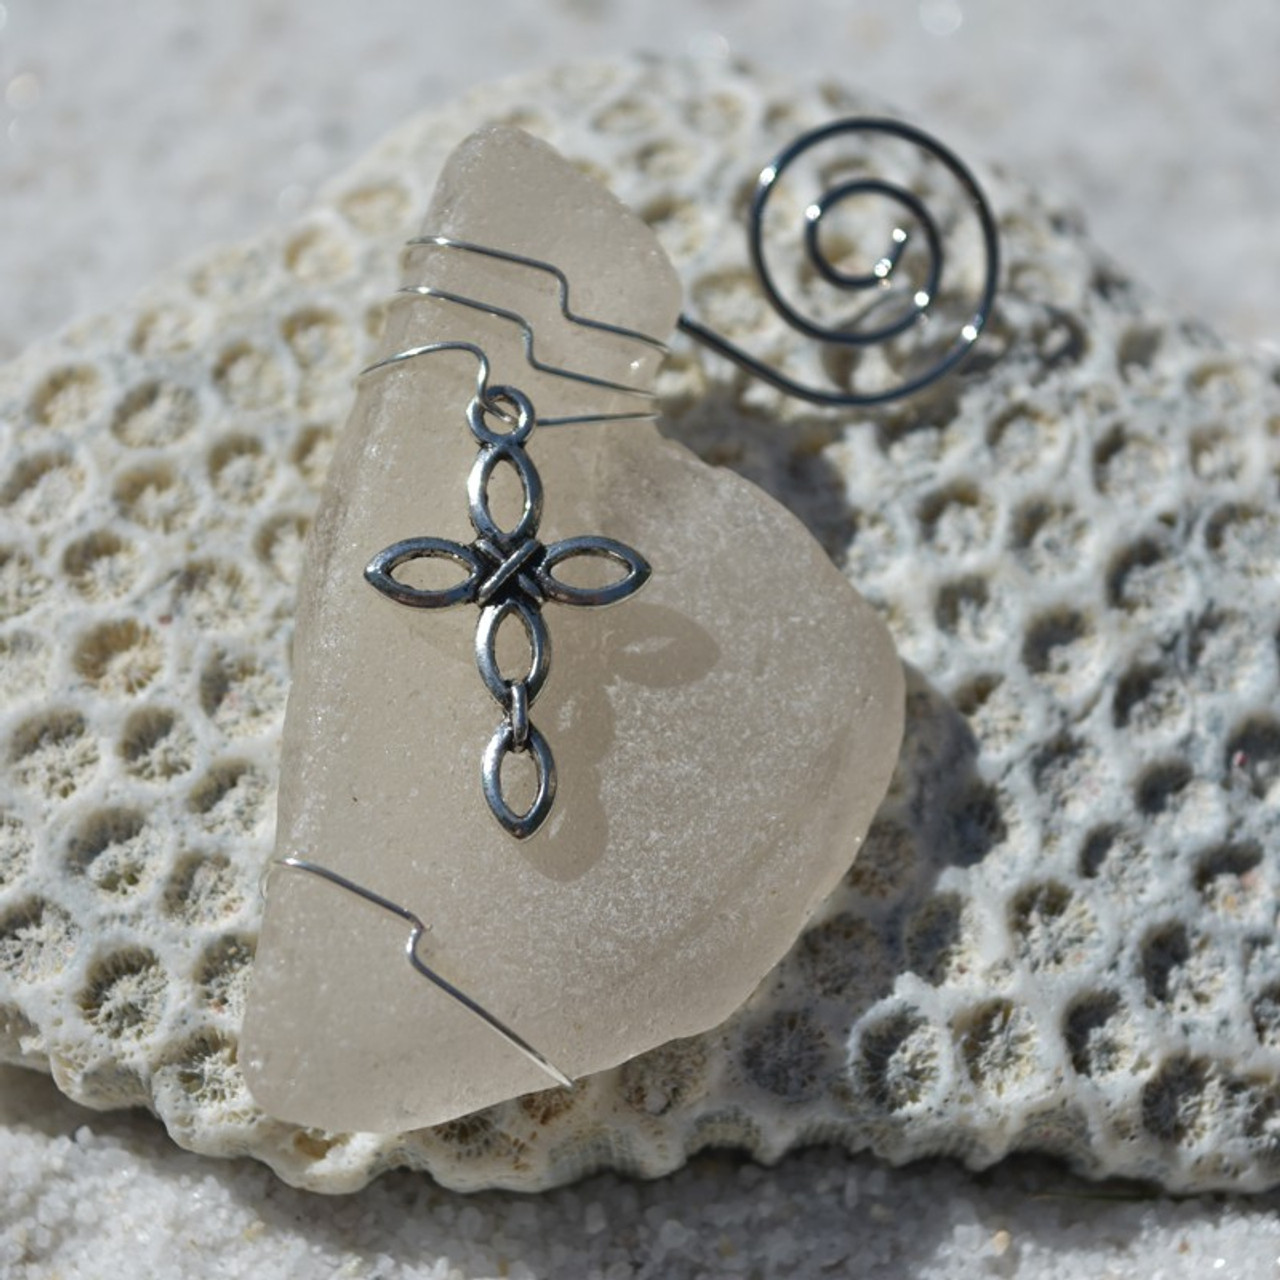 Ornate Silver Cross on a Surf Tumbled Sea Glass Ornament - Choose Your Color Sea Glass Frosted, Green, and Brown - Made to Order